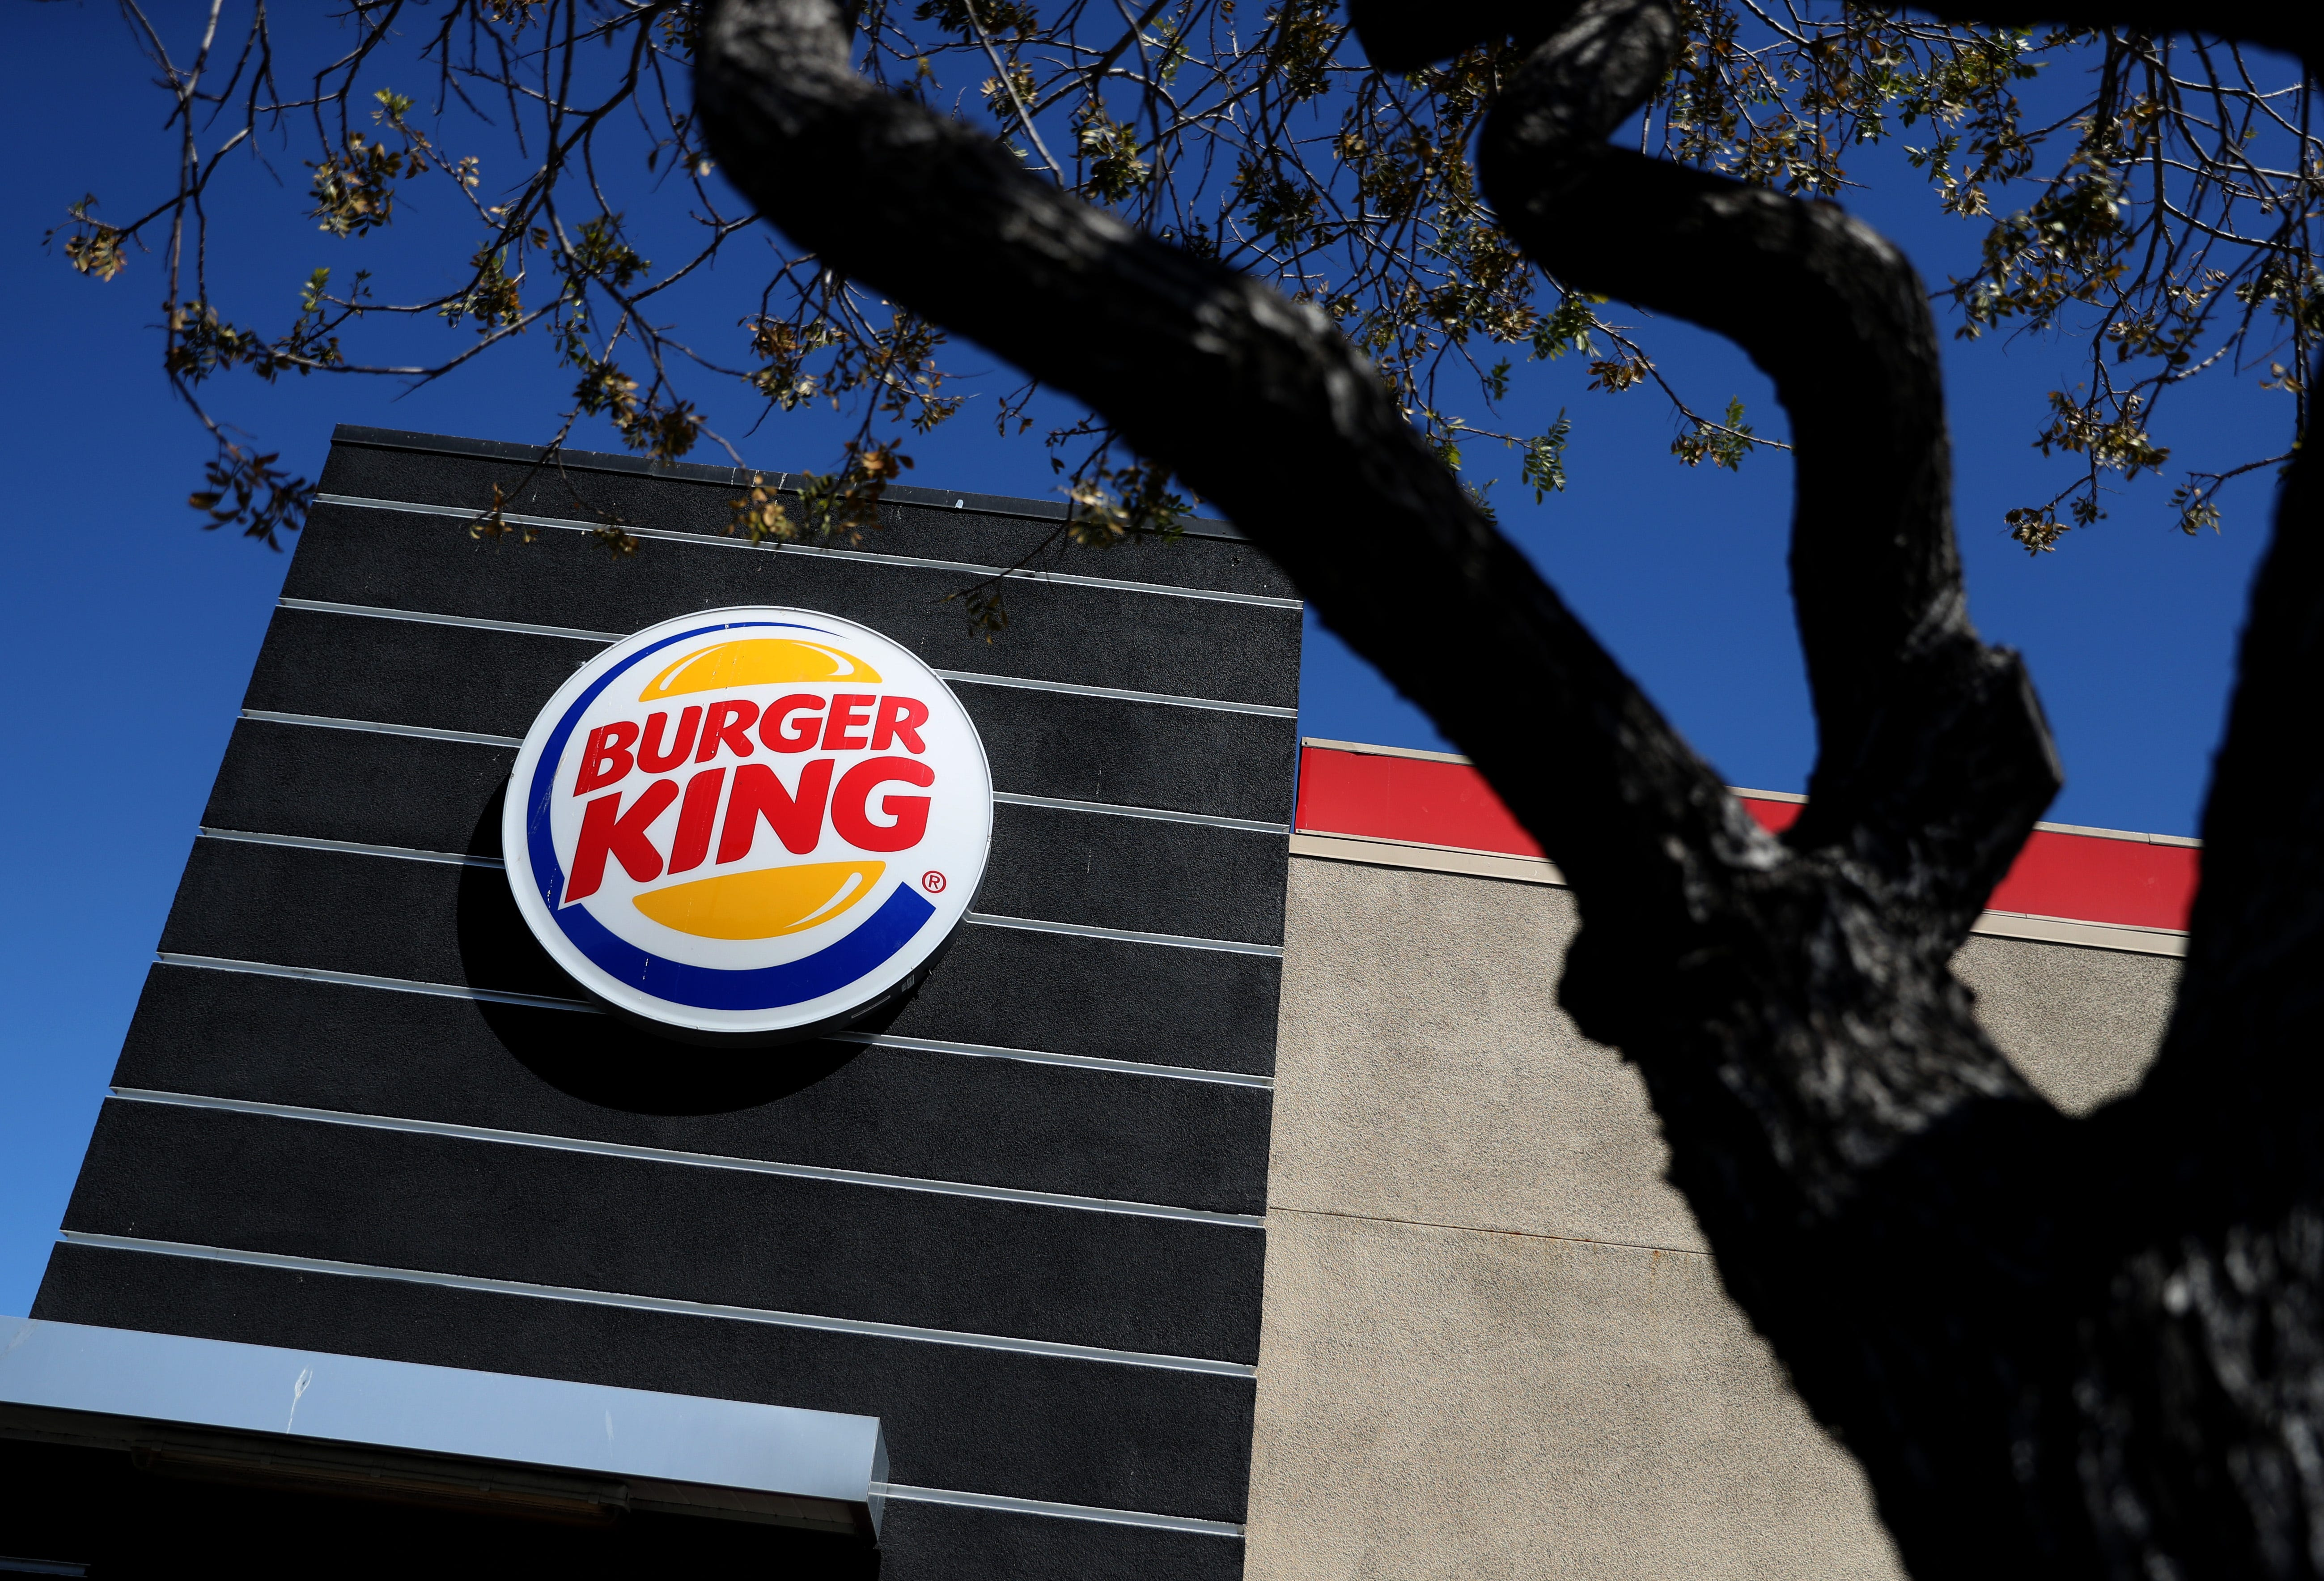 Florida Burger King location caught mopping tabletops, now to retrain